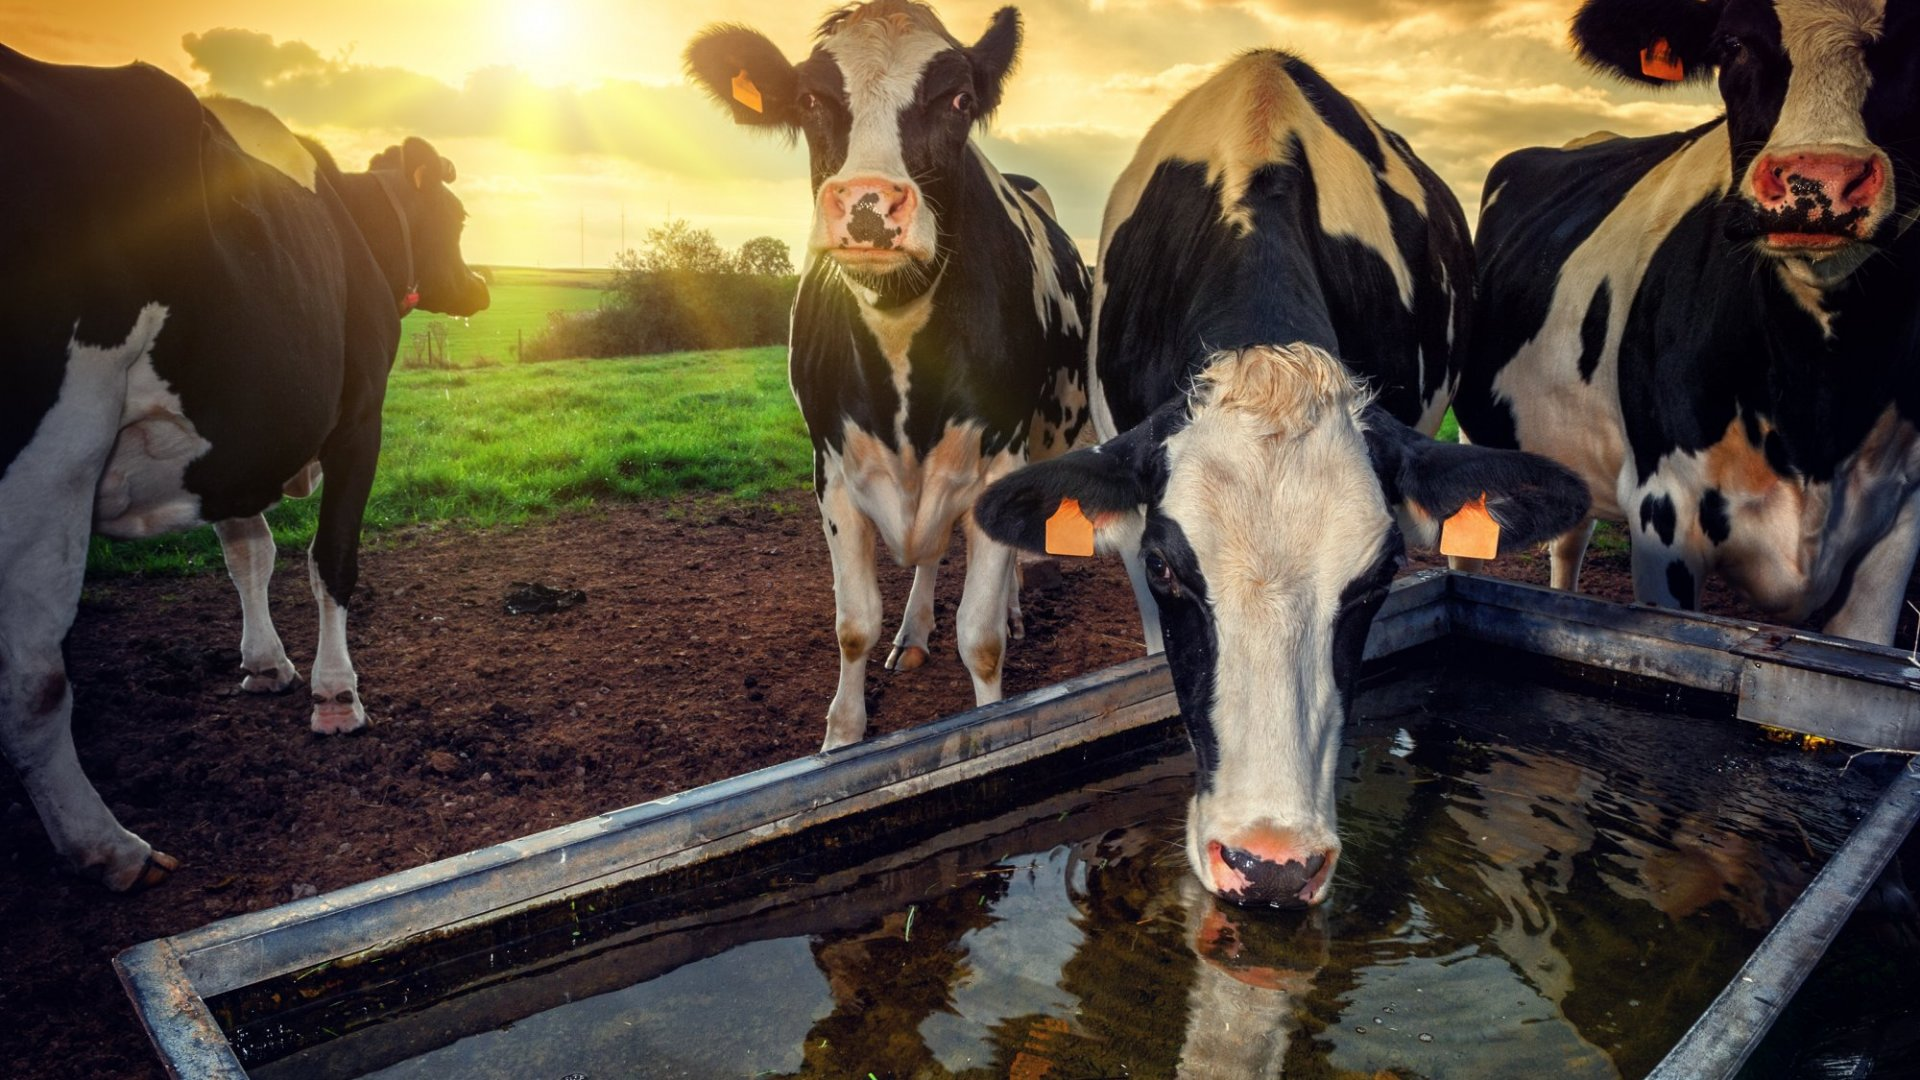 Blockchain may be making its way to those who focus on livestock to survive.